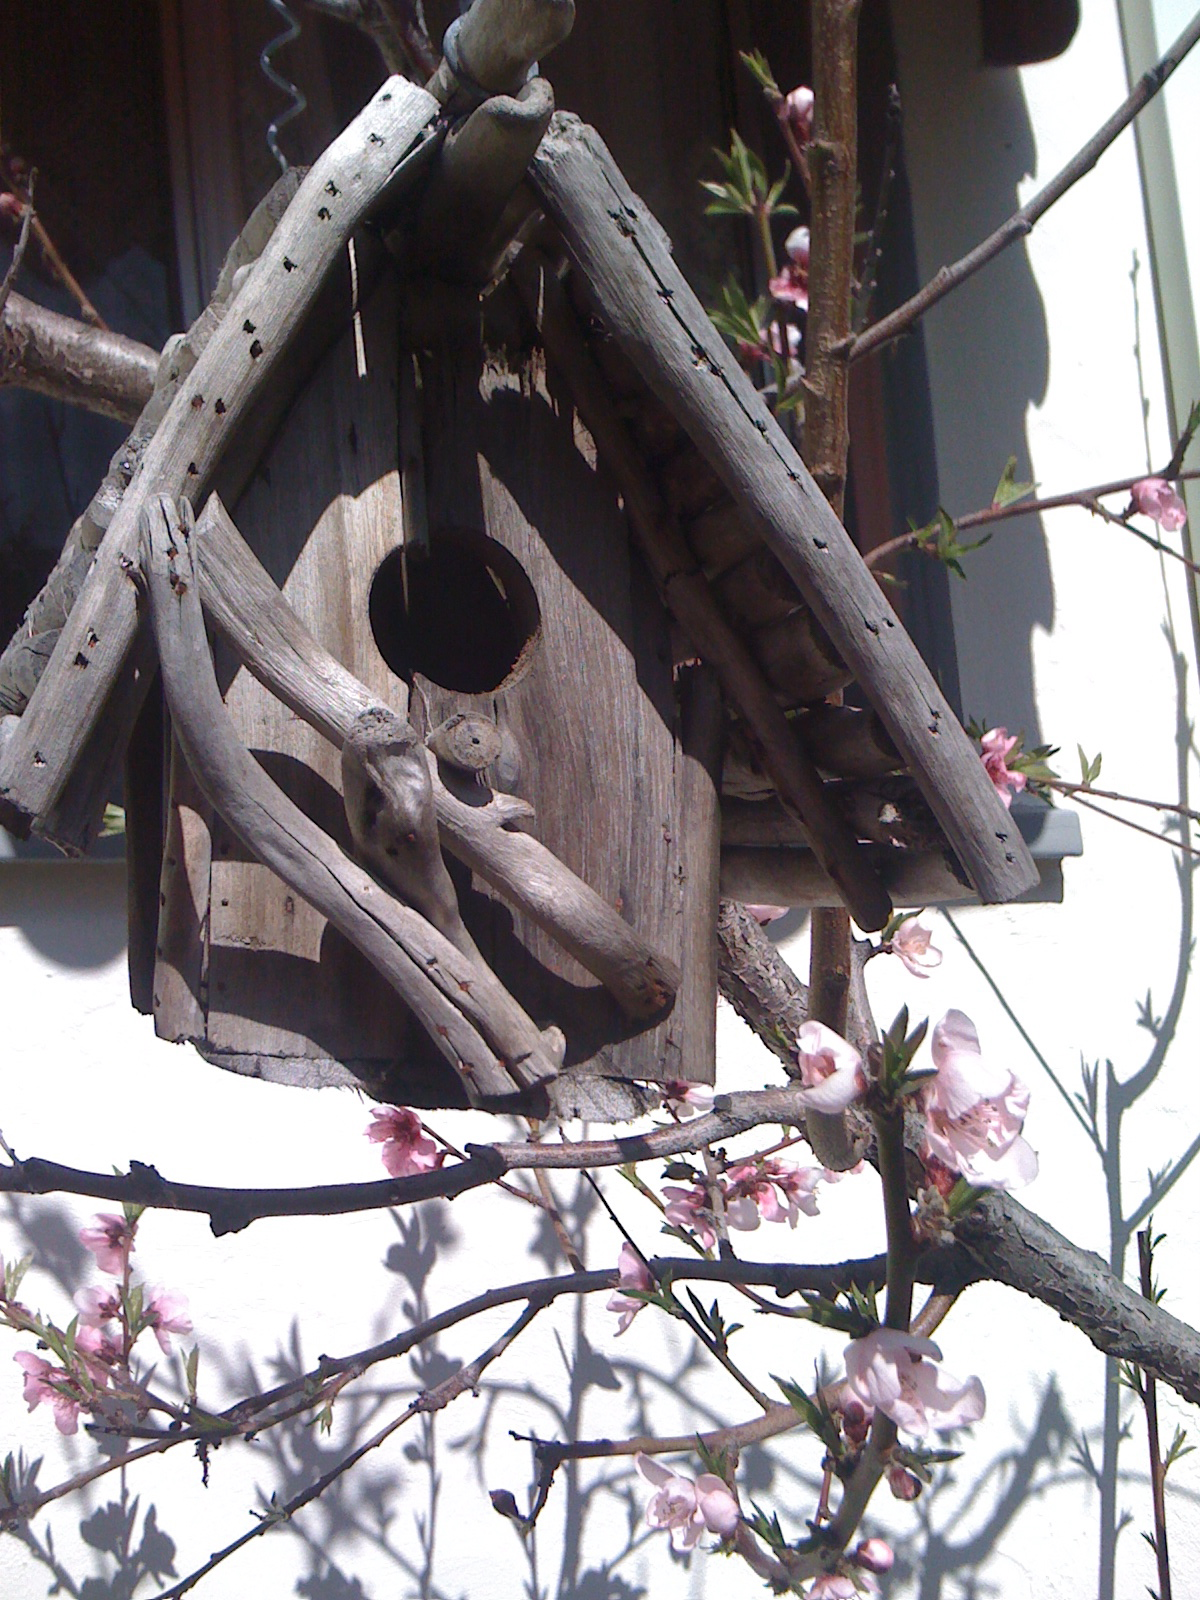 A rustic birdhouse and peach blossoms.